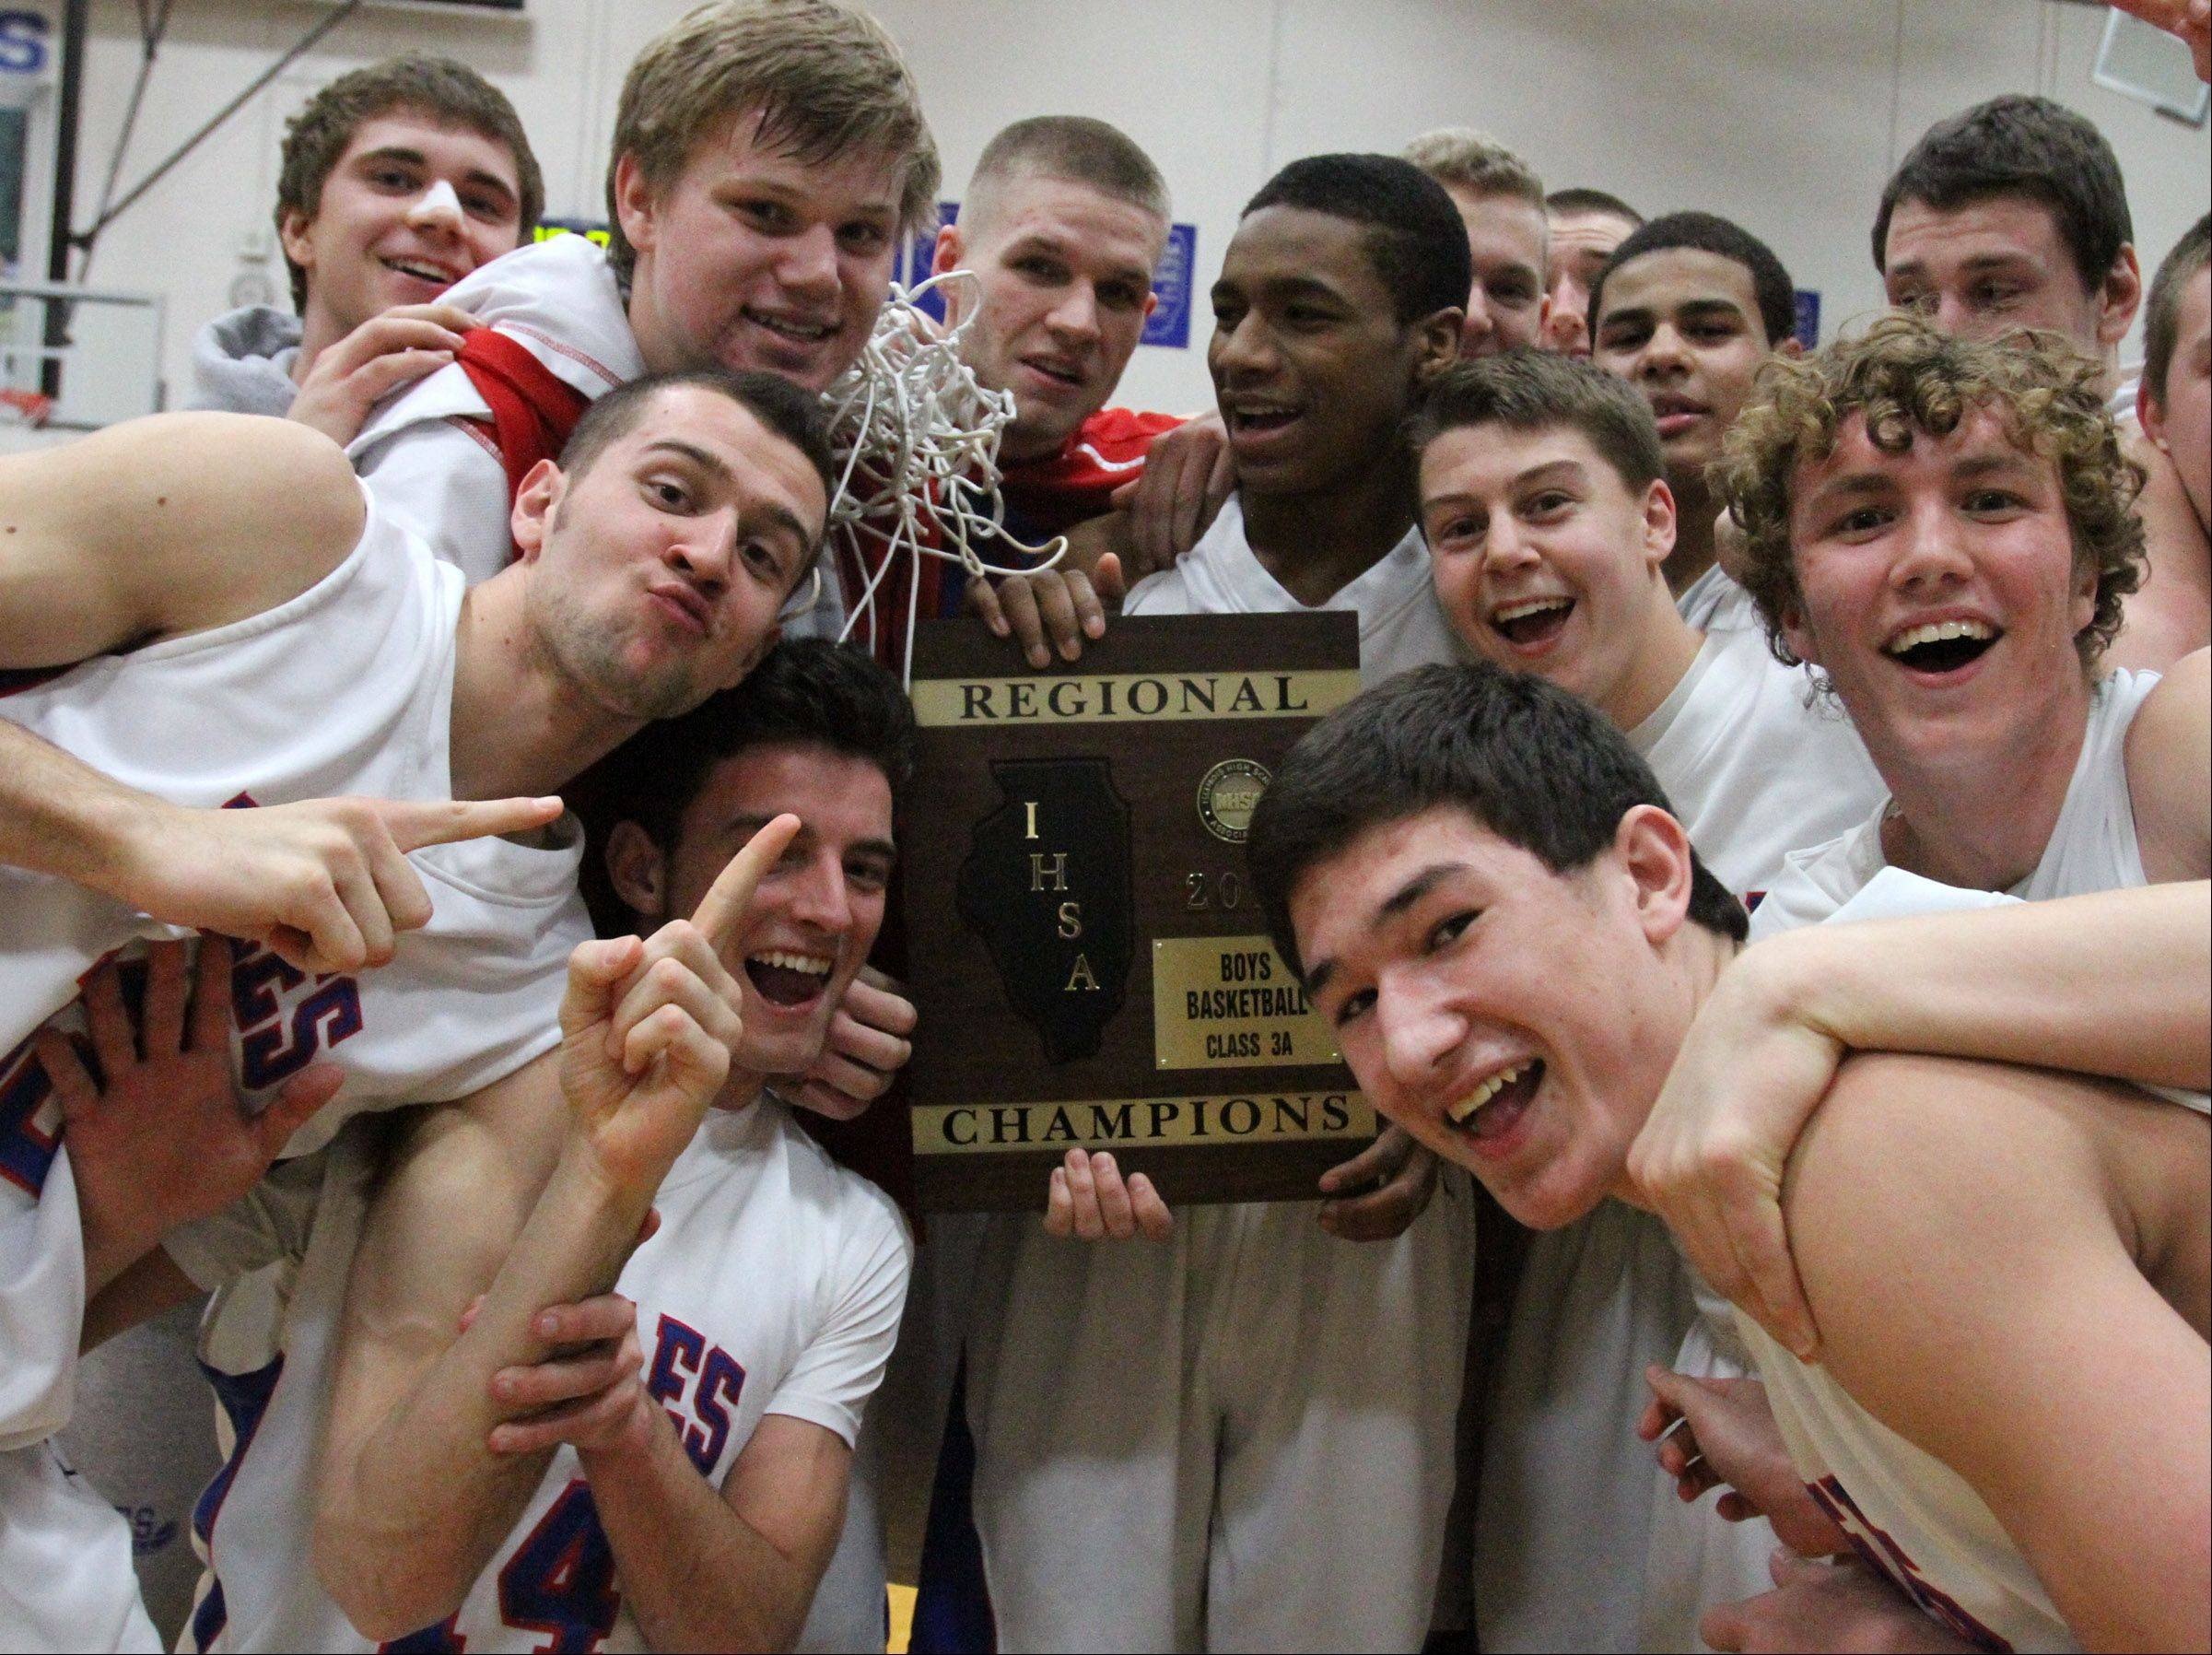 Lakes celebrates its Class 3A regional championship over Wauconda at Vernon Hills on Friday.